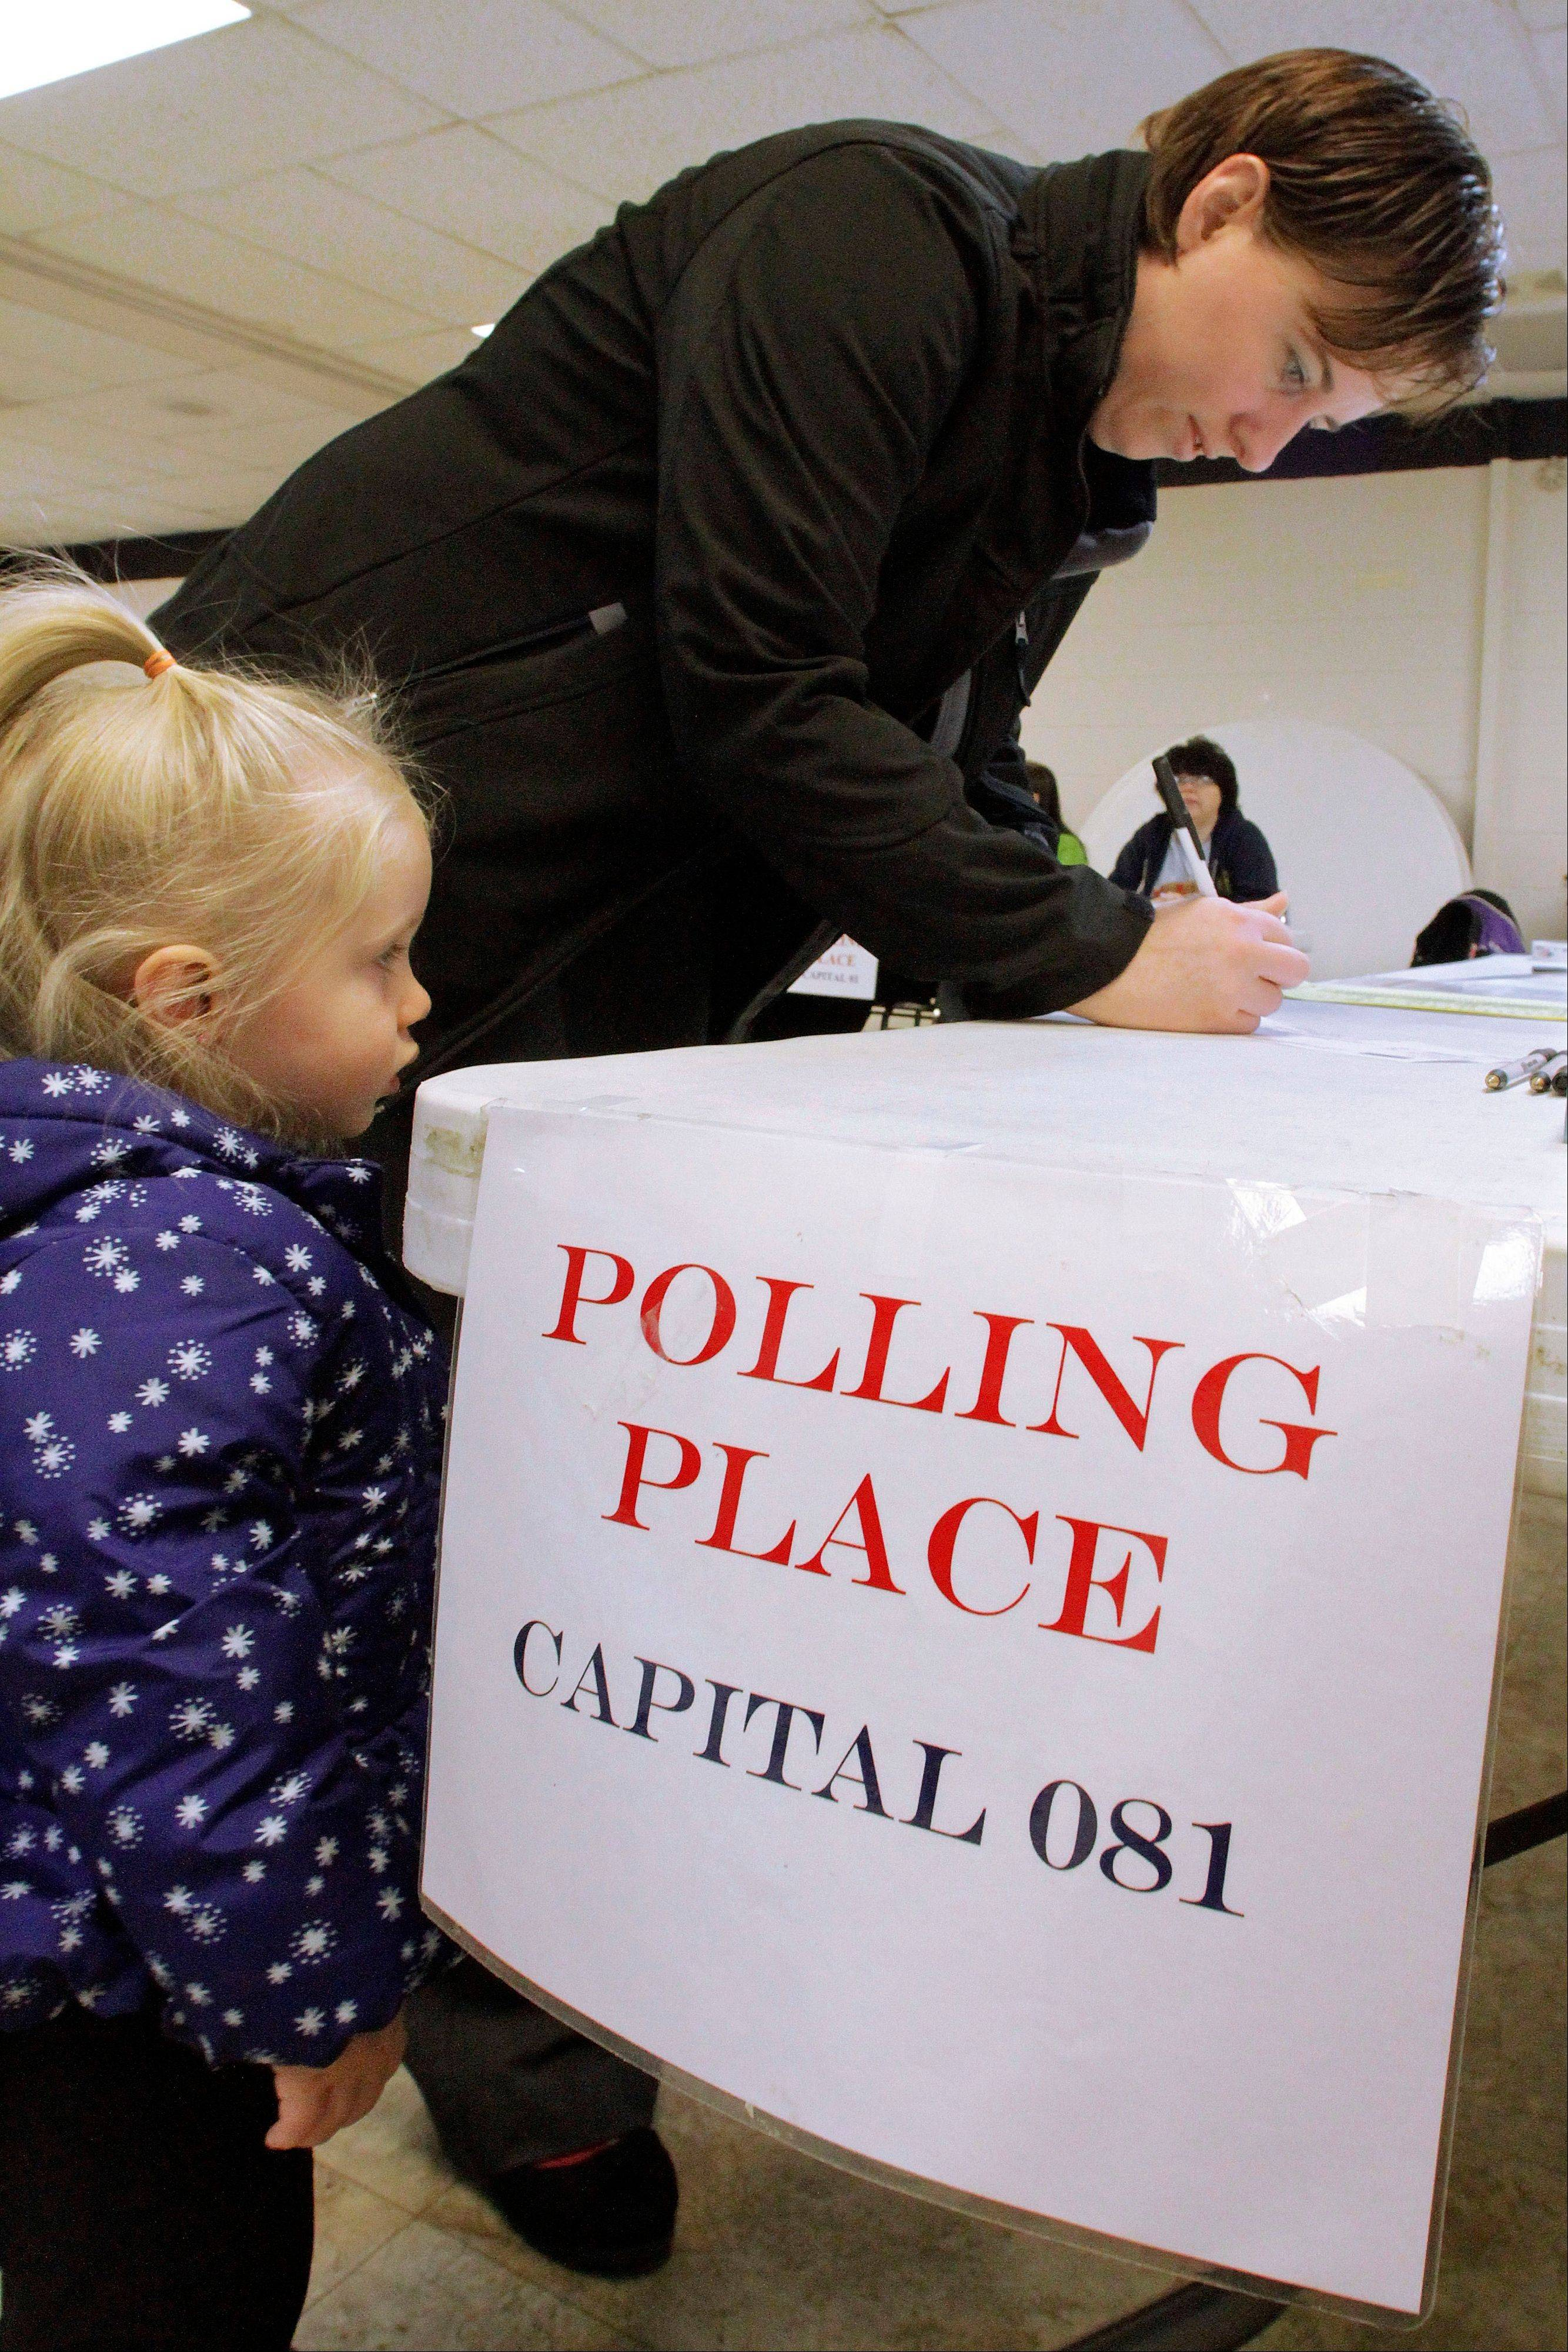 With her daughter, Katrina, 2, looking on, Pamela Clapp votes on election day Tuesday, Nov. 6, 2012 in Springfield, Ill.